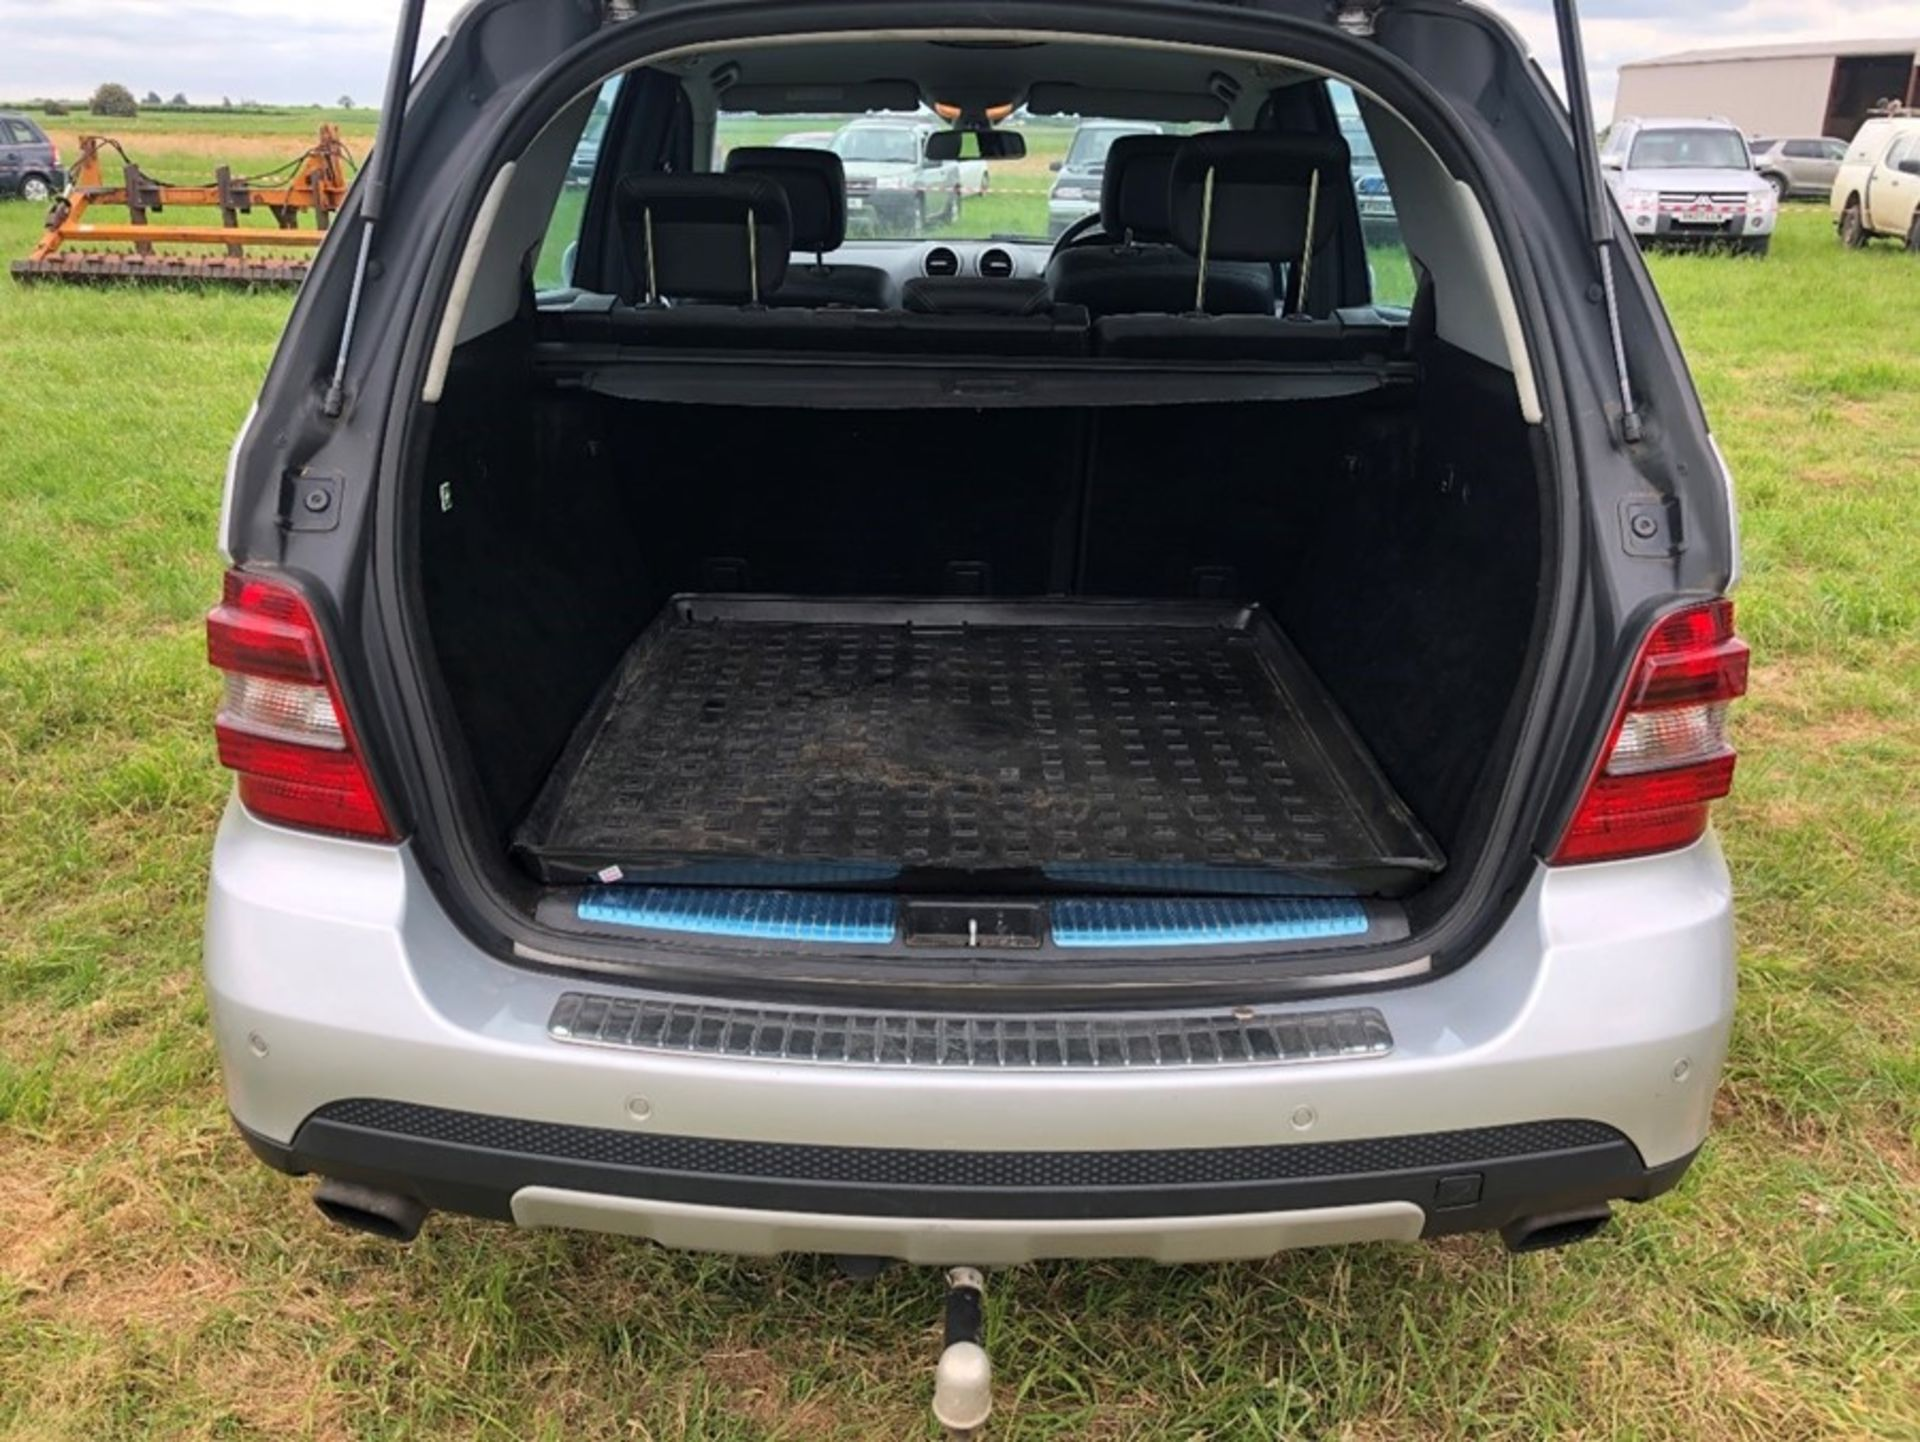 (07) Mercedes ML 320 CDI, diesel, 4 Matic car, 129,530 miles, one owner, tow bar. full service - Image 14 of 14